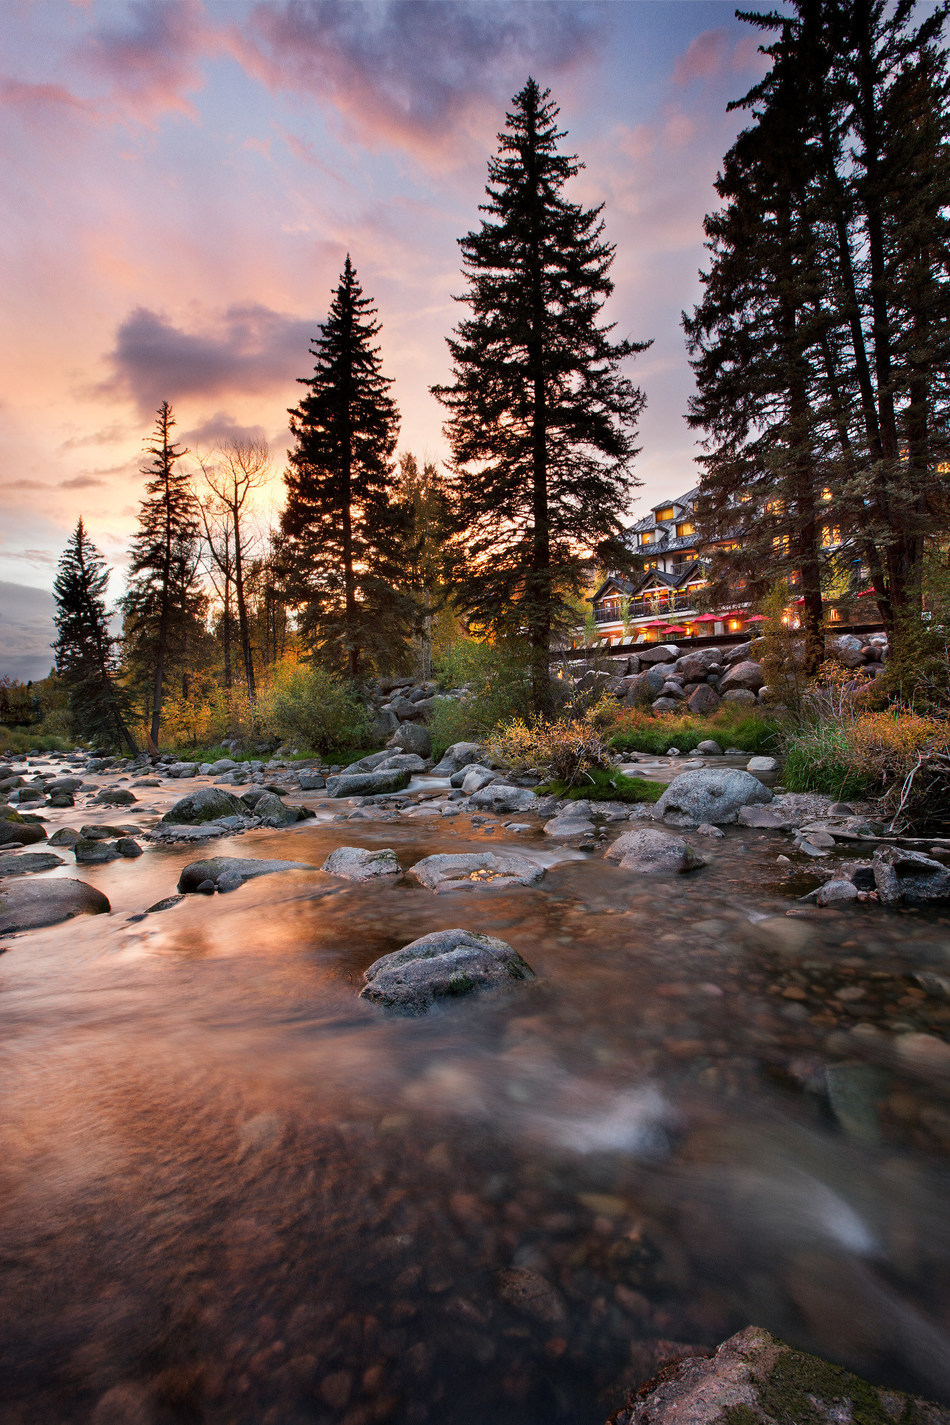 Laurus Corp., luxury condo development planned in Vail, Co., adjacent to the Gore Creek and Hotel Talisa